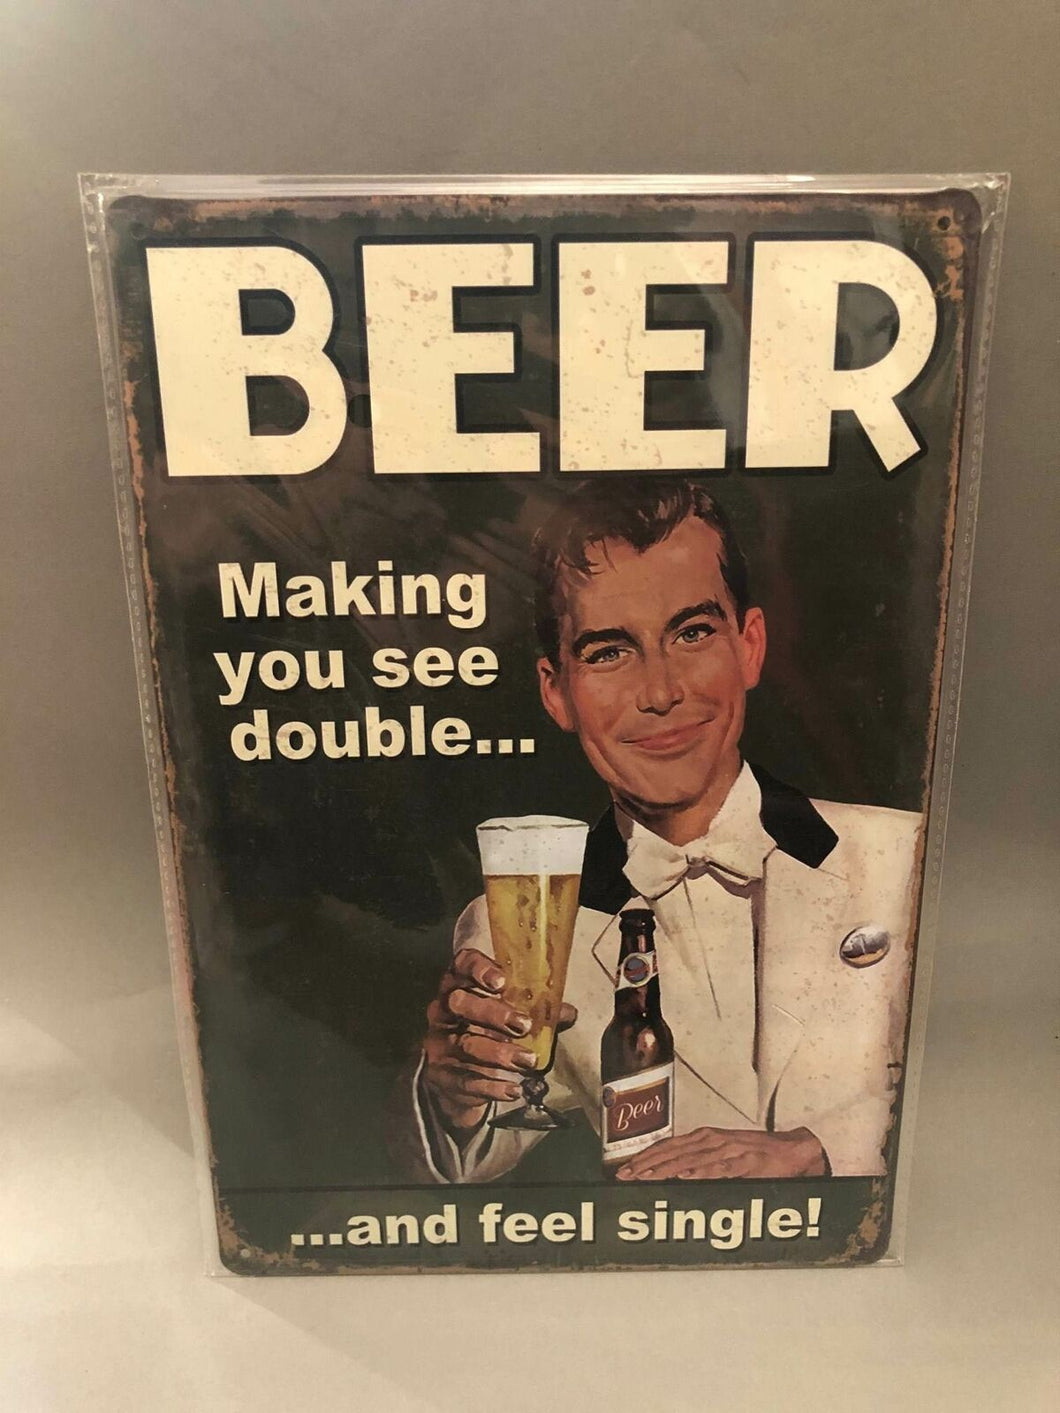 Nostalgie Blech Schild Beer Bier making you see double and feel 20 x 30 42010